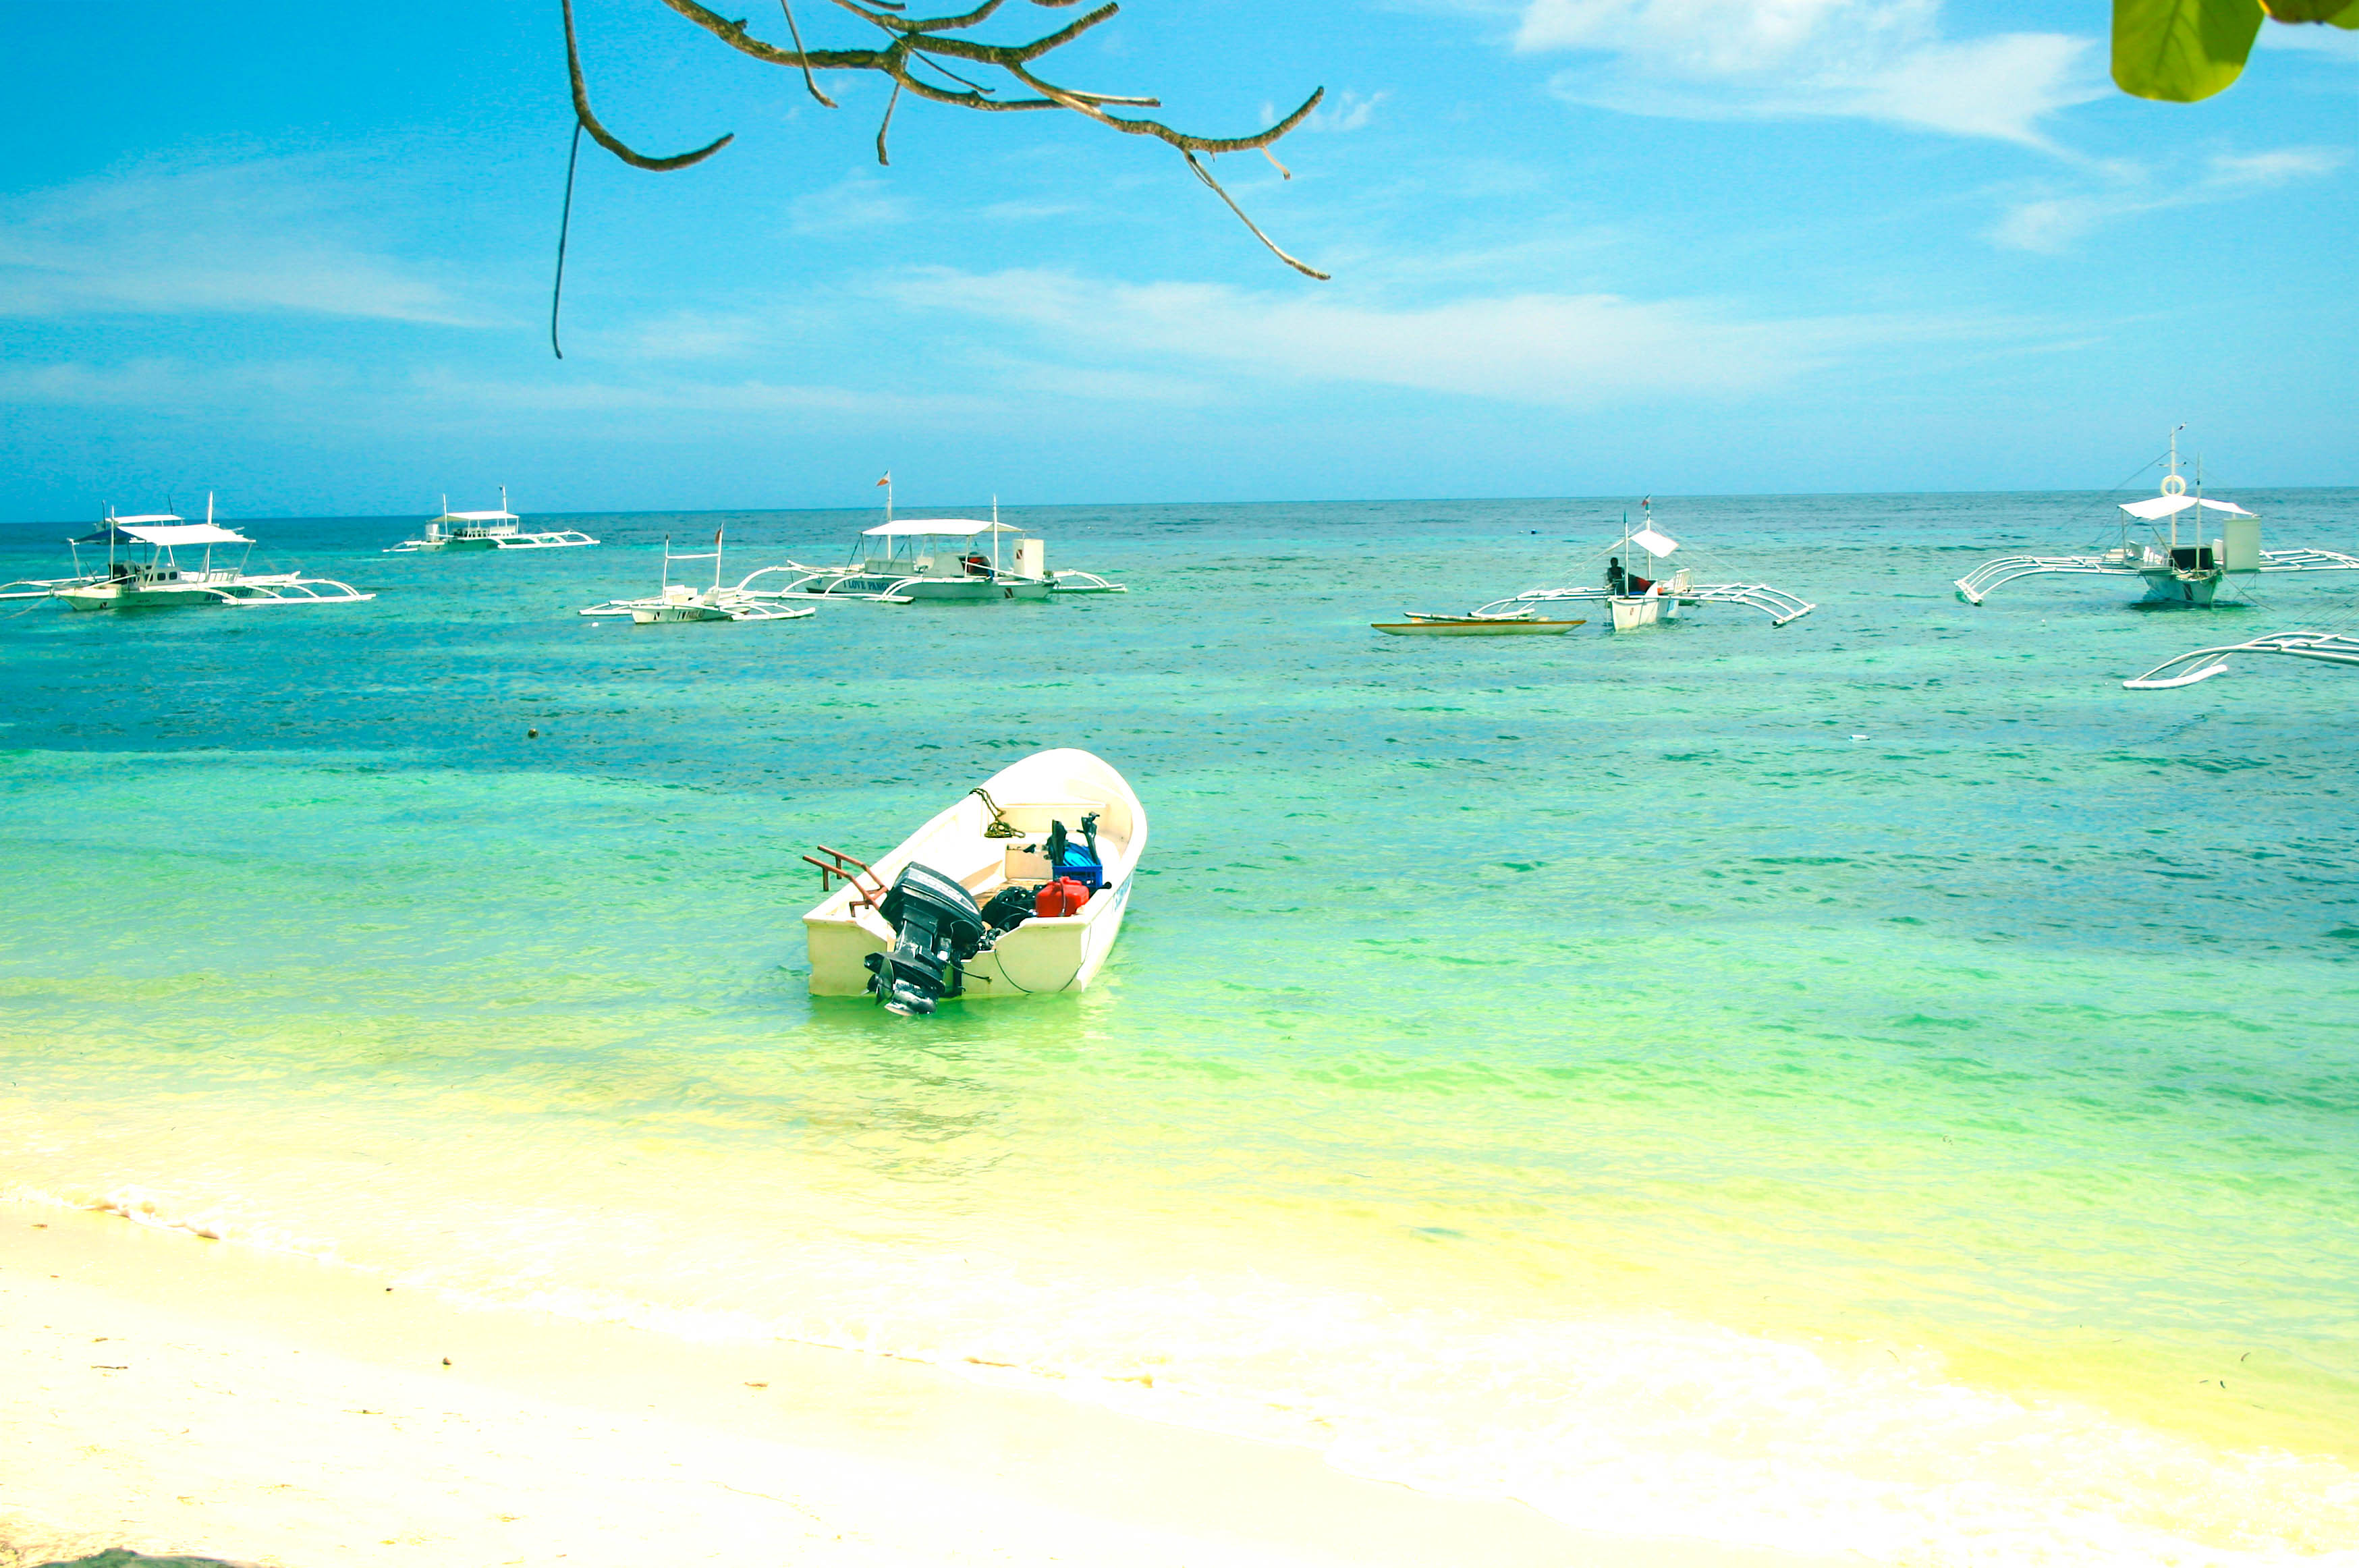 Outrigger boats moored close to white sandy shore in Panglao, Philippines